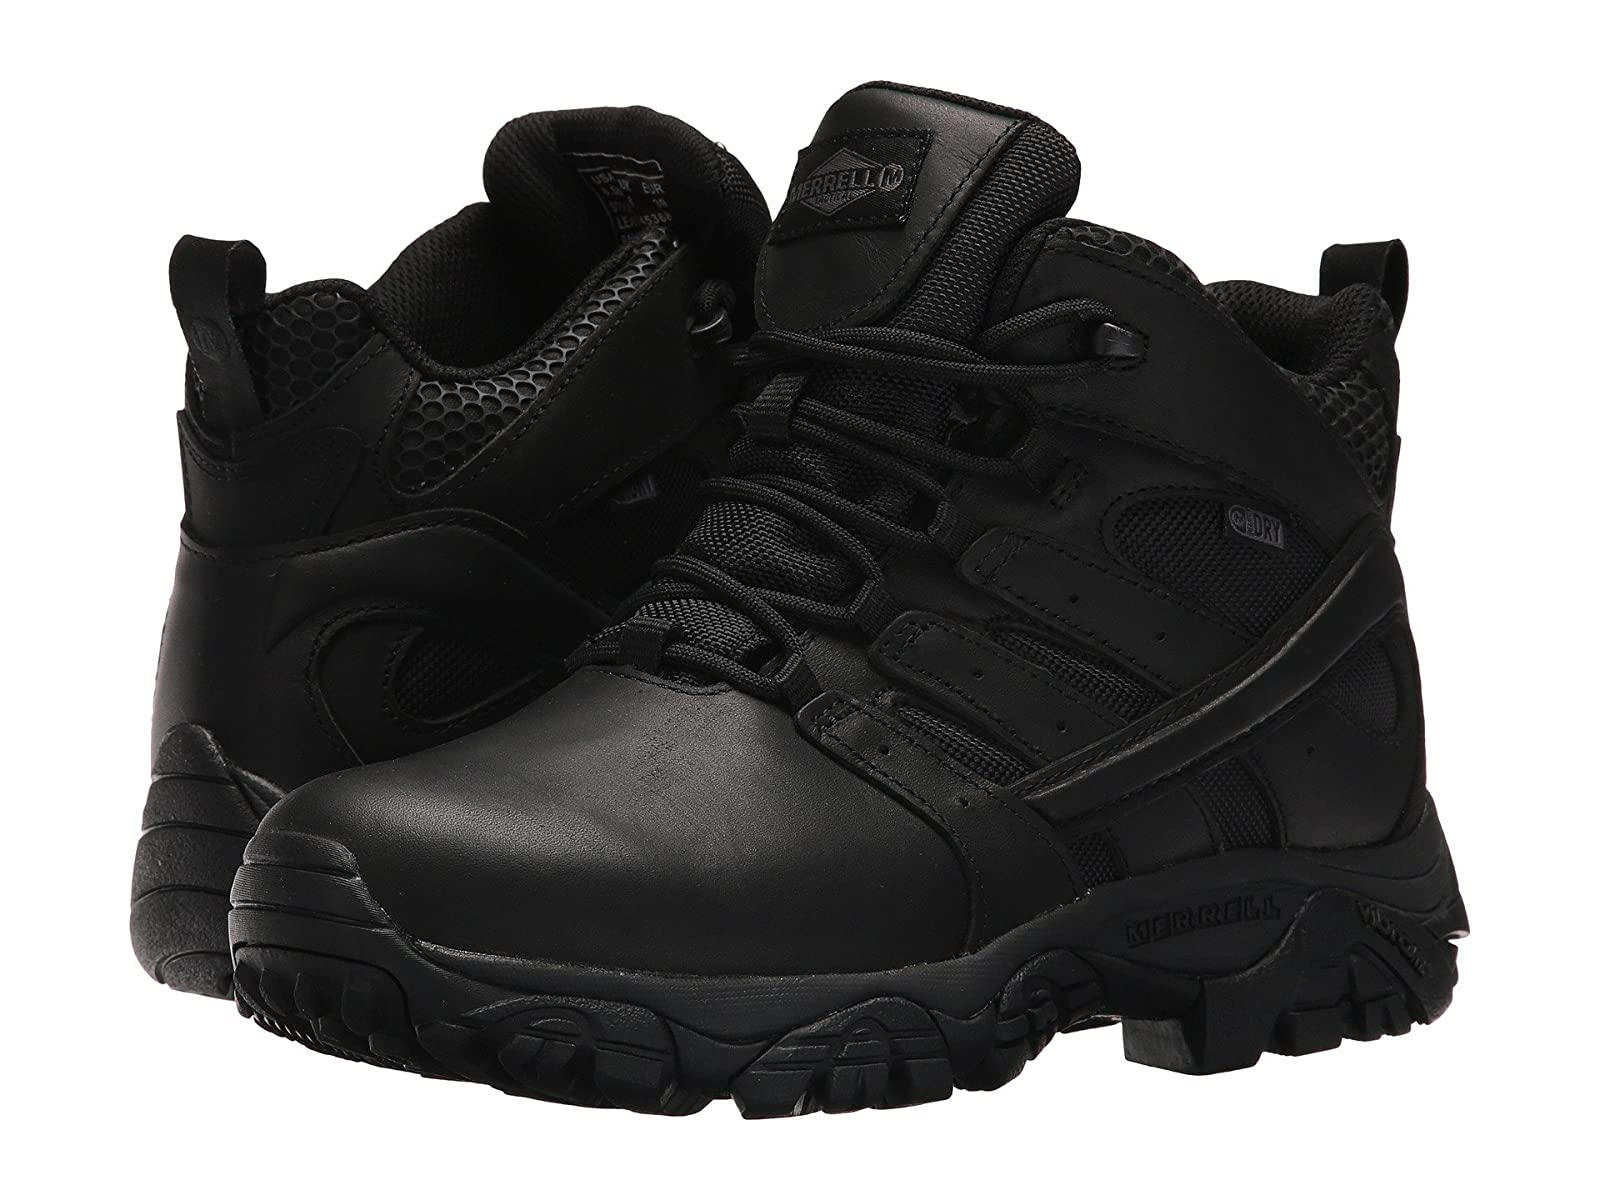 Merrell Work Moab 2 Mid Tactical Response WaterproofEconomical and quality shoes